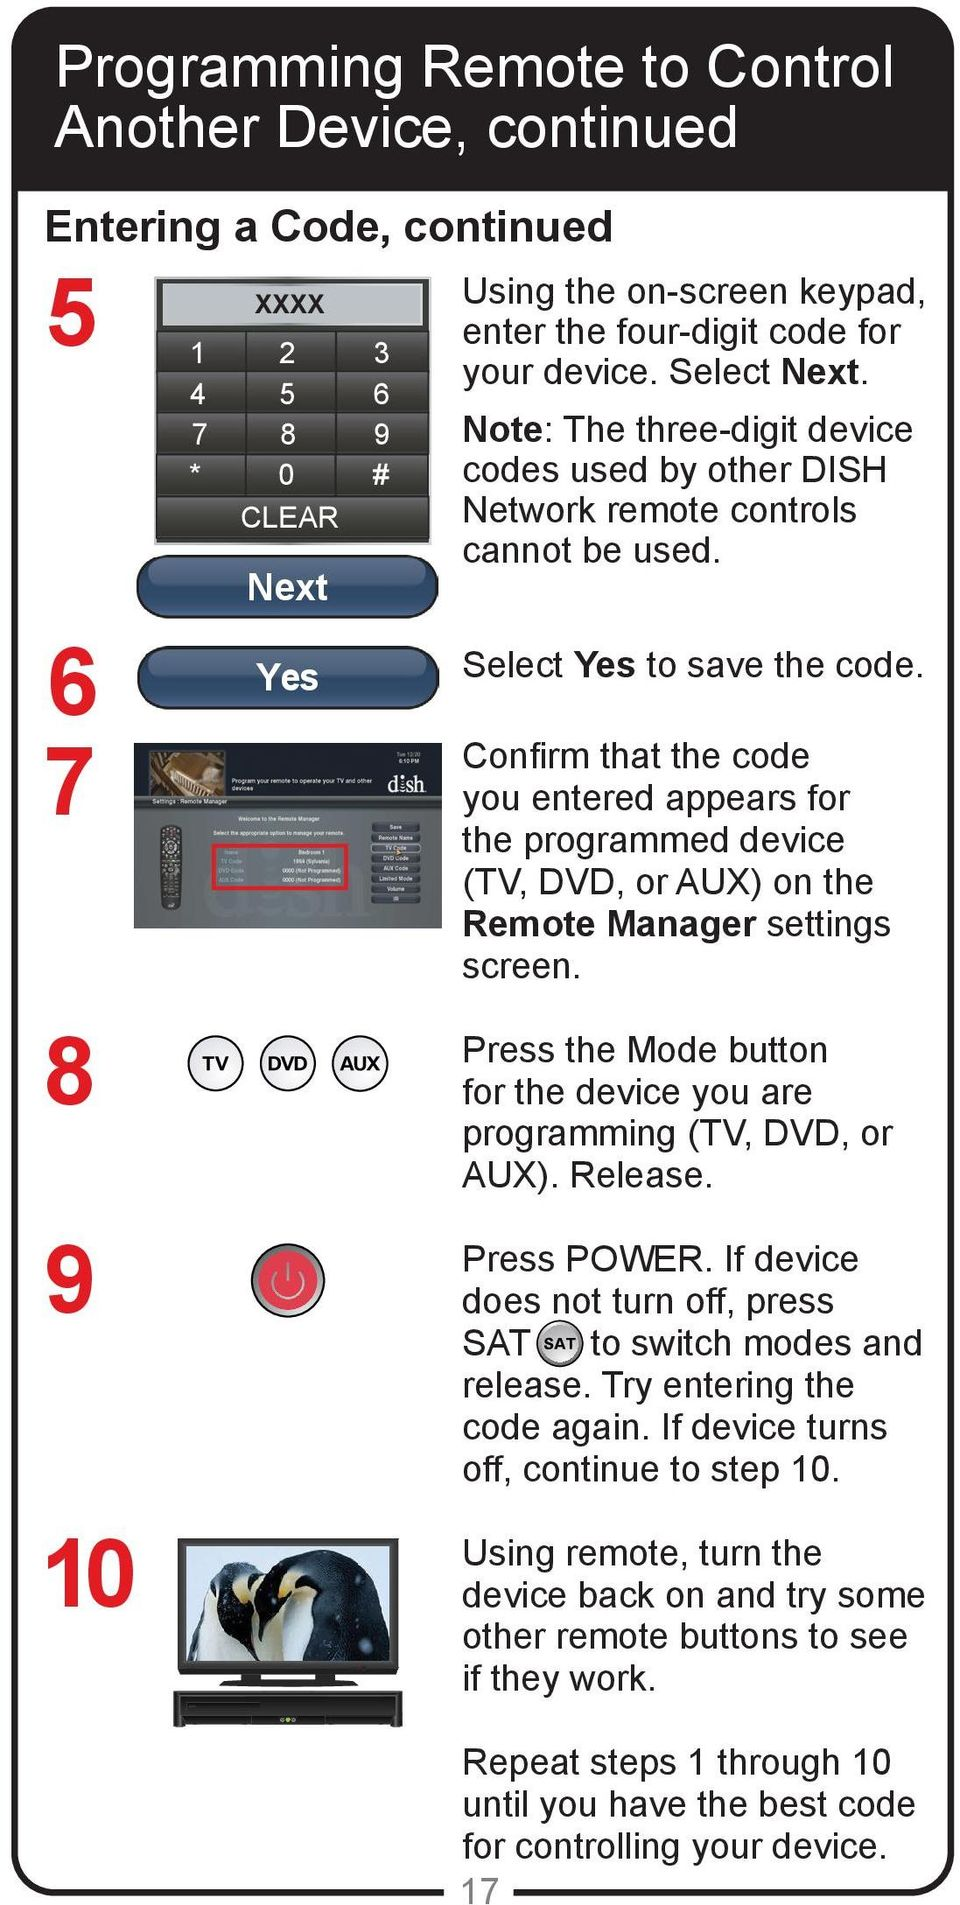 Confirm that the code you entered appears for the programmed device (TV, DVD, or AUX) on the Remote Manager settings screen. Press the Mode button for the device you are programming (TV, DVD, or AUX).